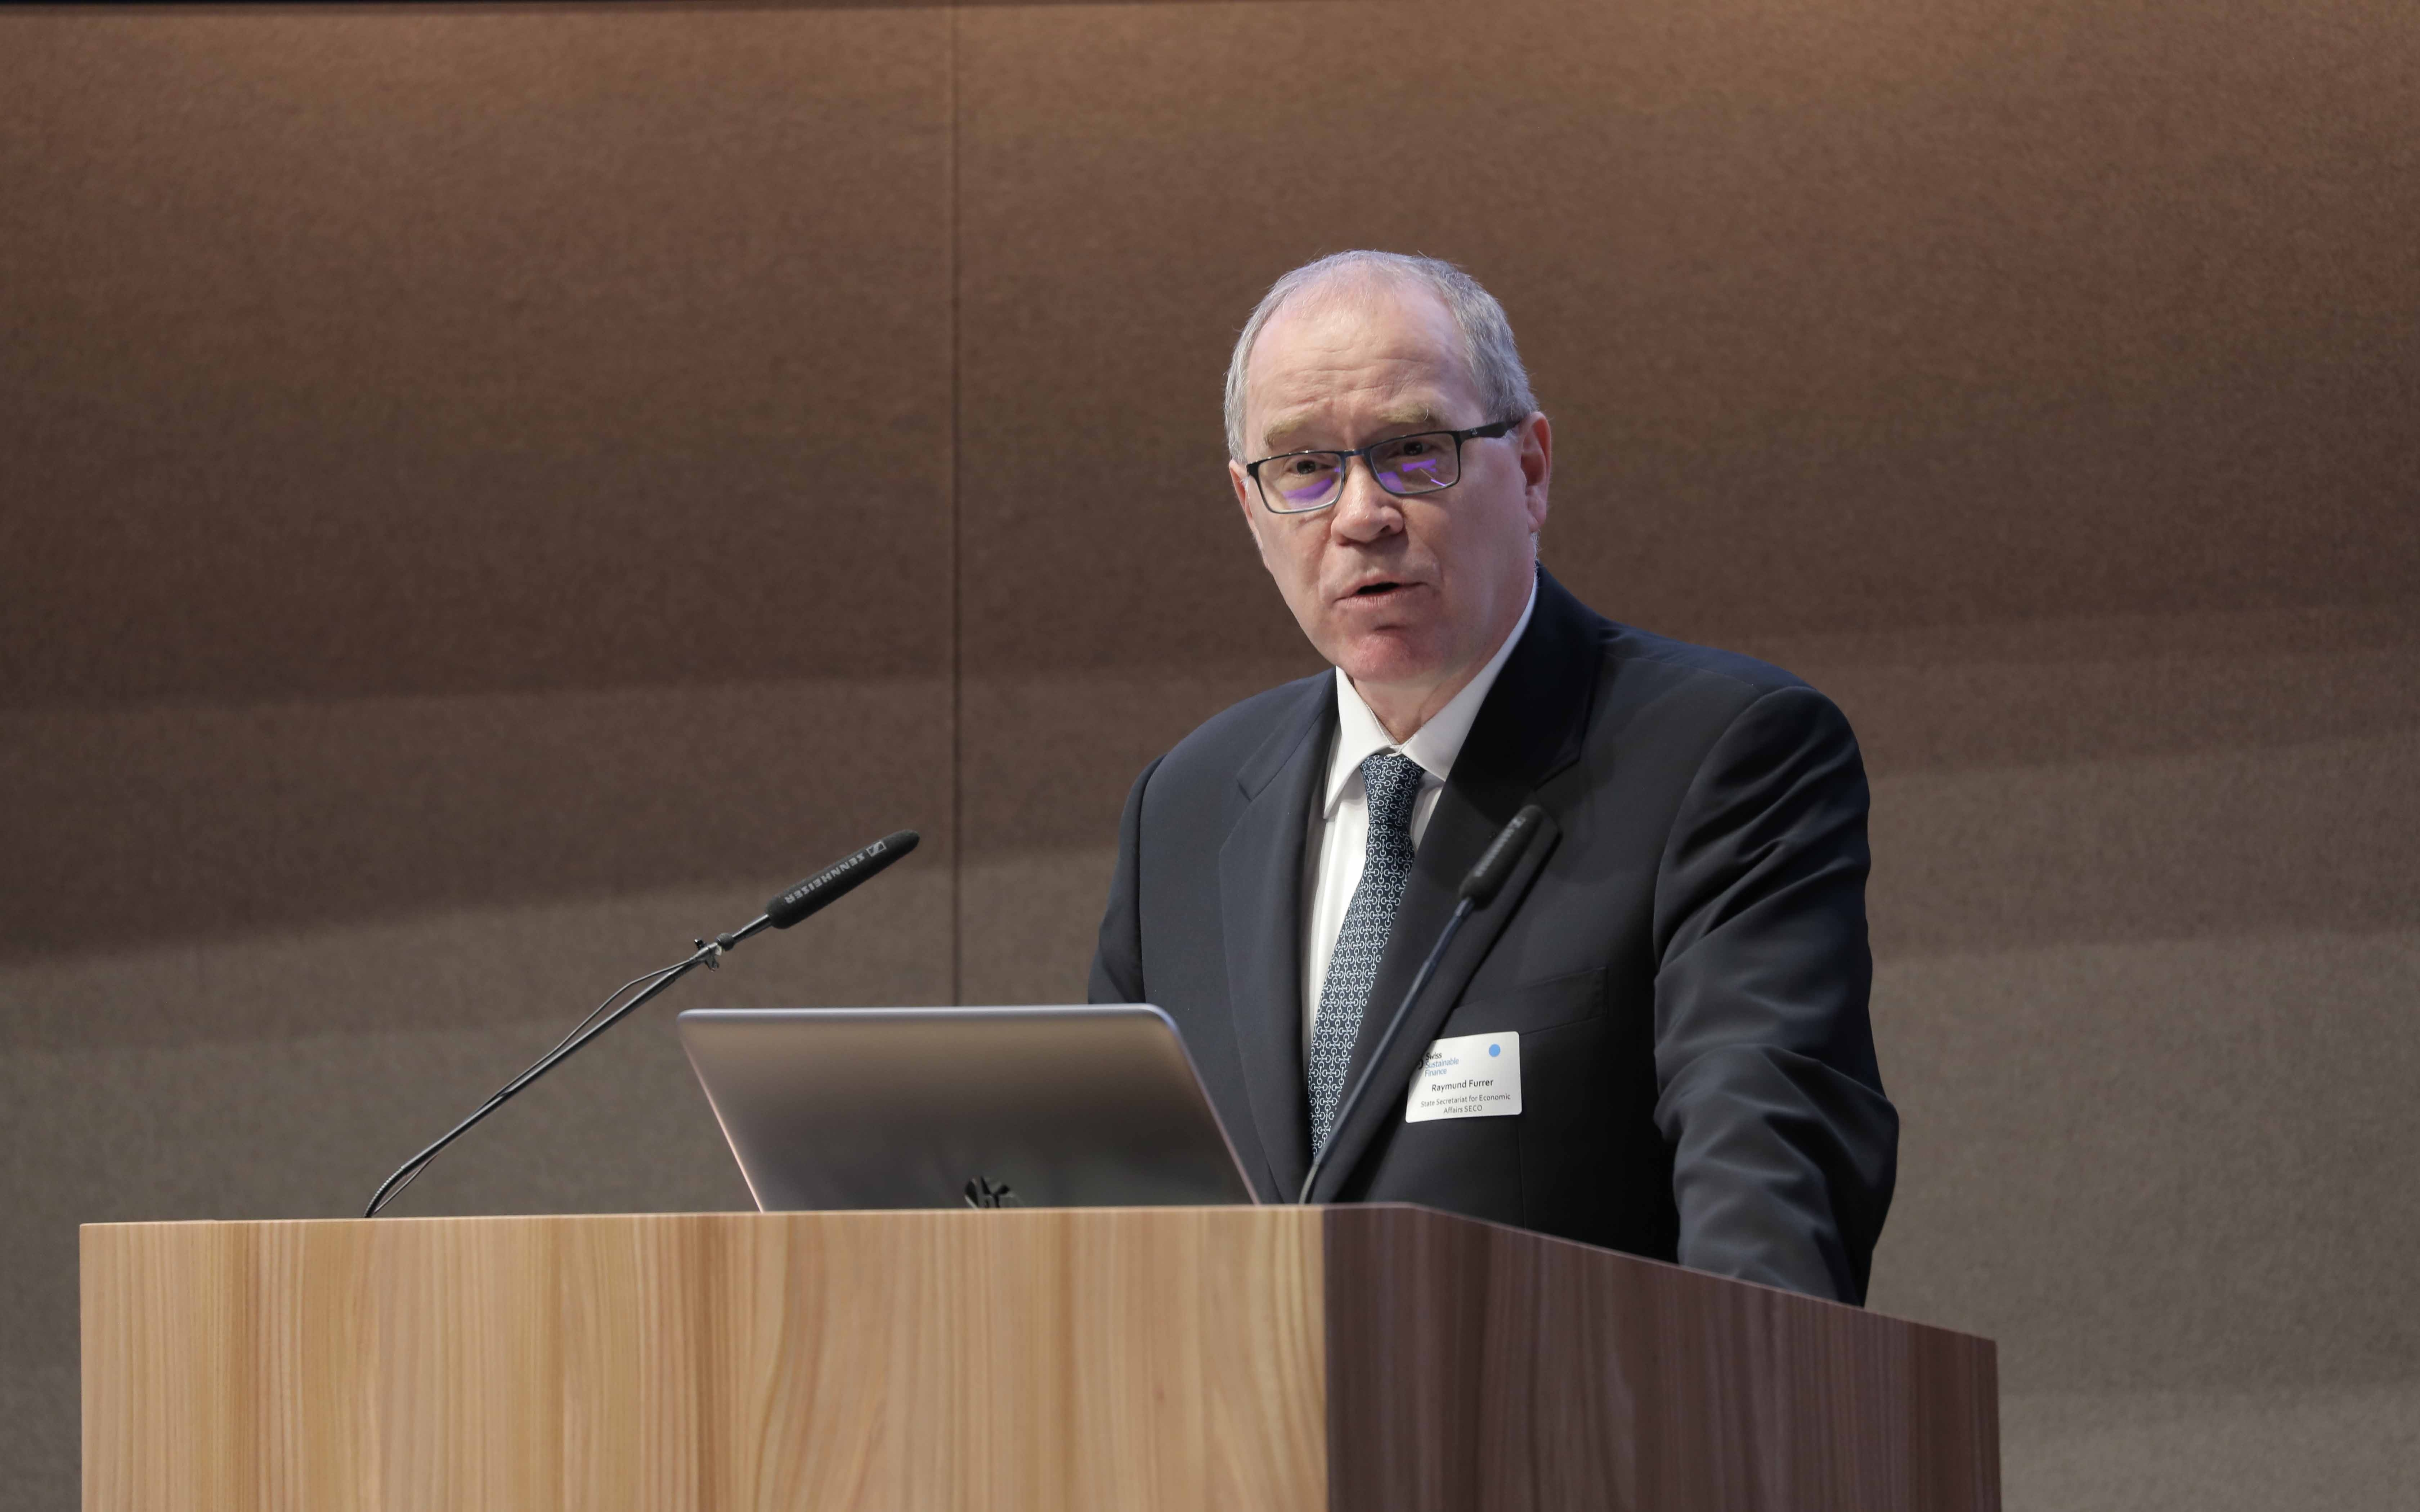 Ambassador Raymund Furrer at the Swiss Sustainable Finance Conference in January 2018